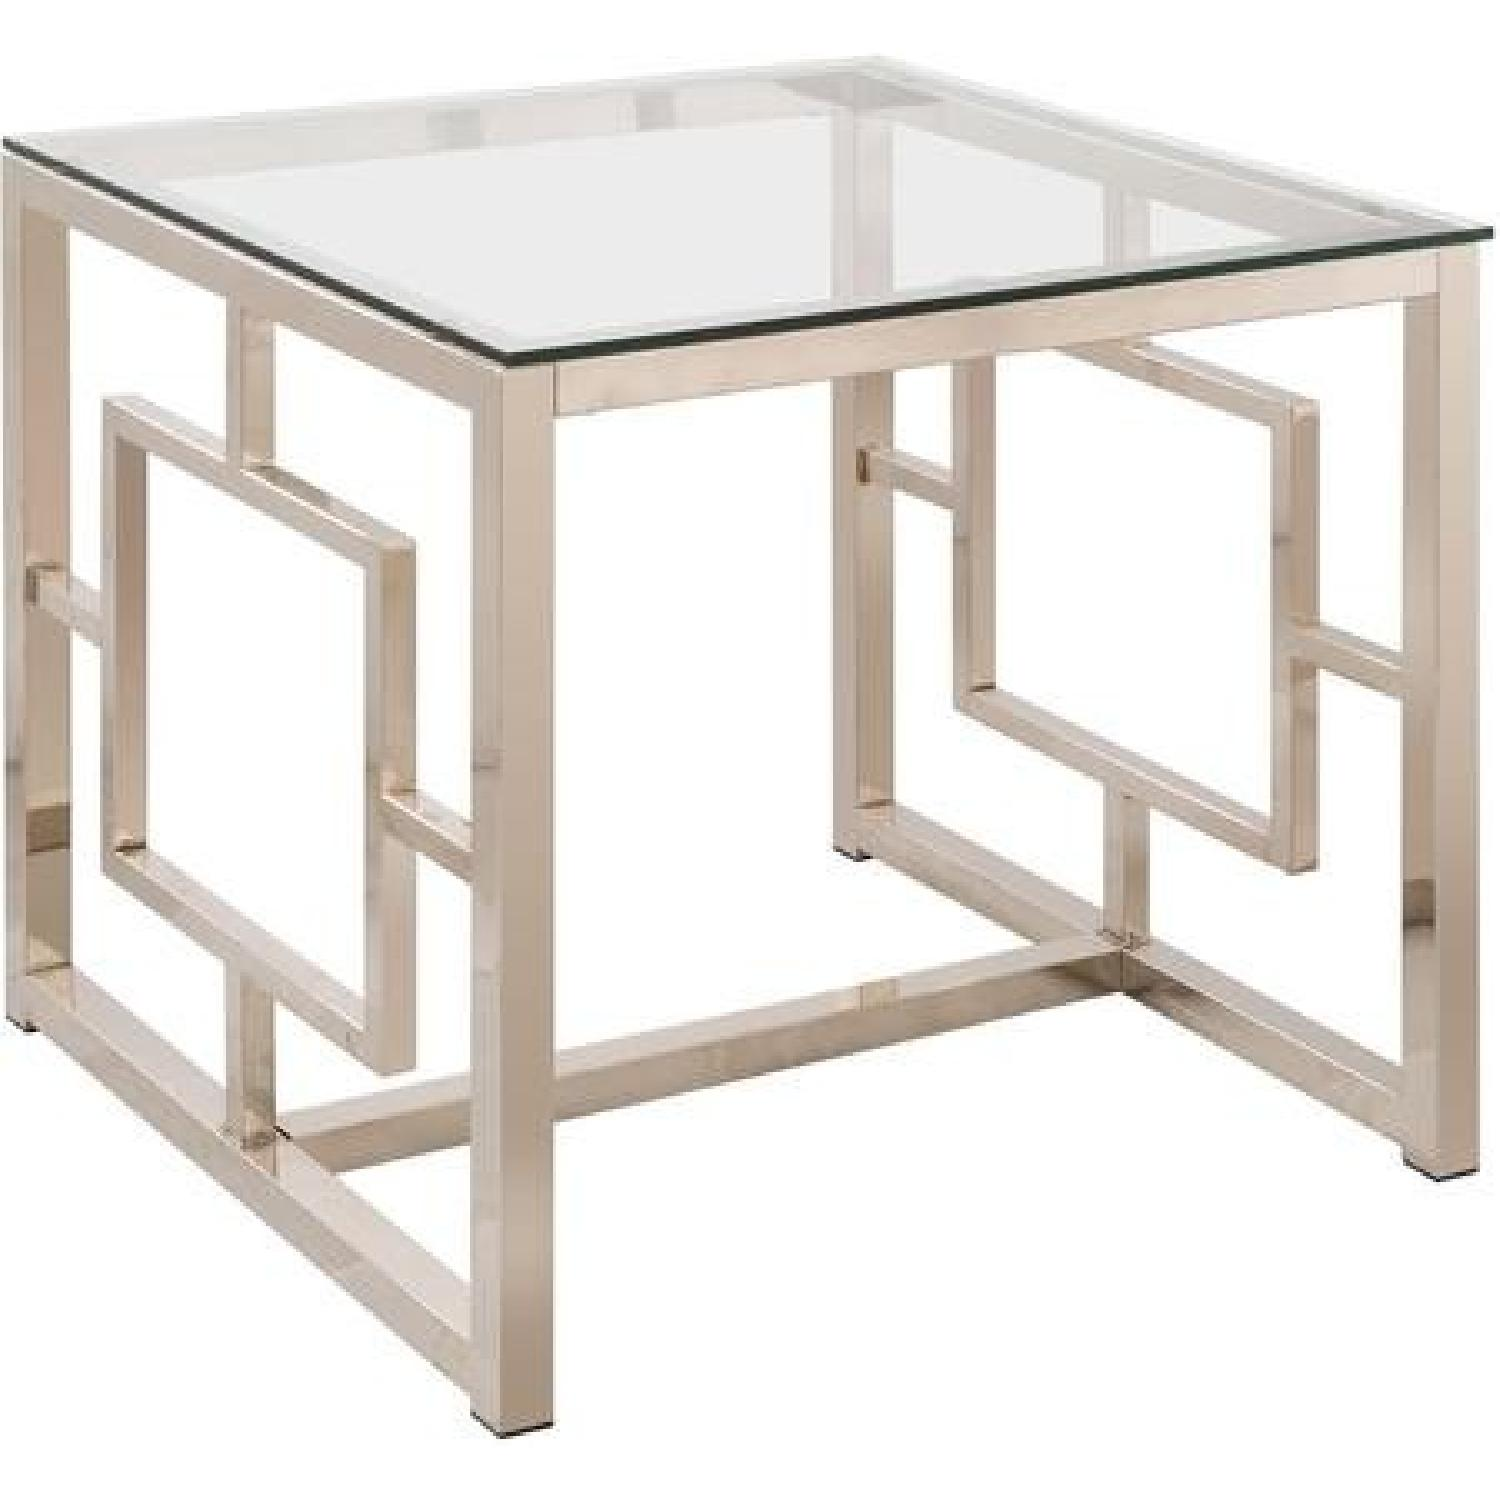 Contemporary Glass End Table in Nickel Finish